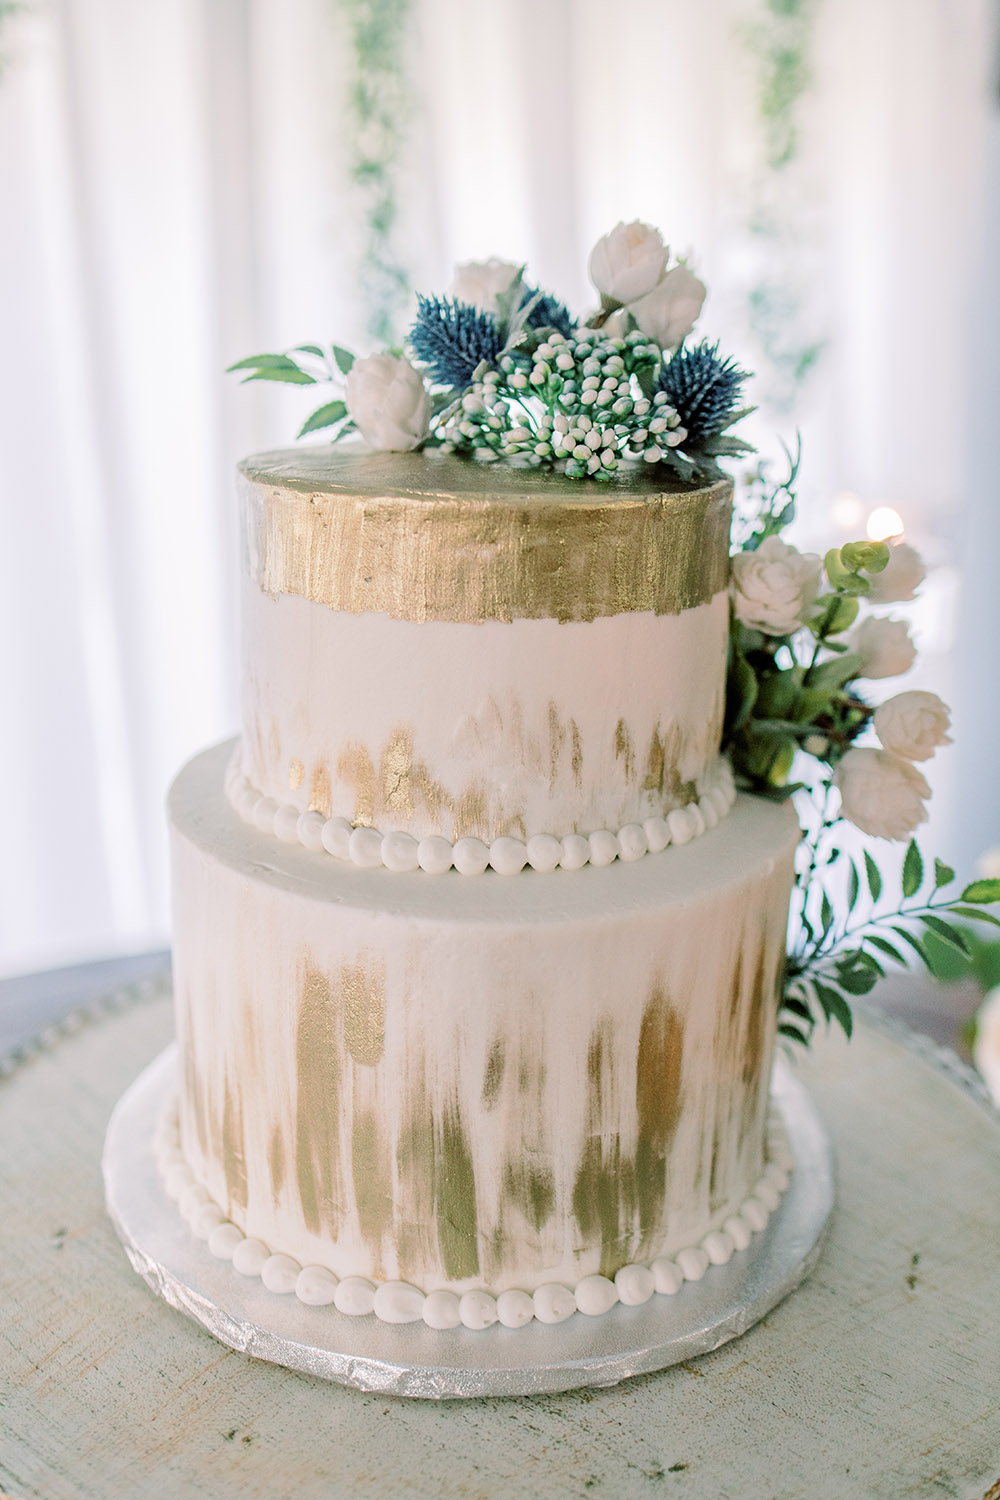 Detail of the Wedding Cake. A two-tier ivory cake with gold accents and fresh flowers and greenery. Photo: Ashley Kristen Photography